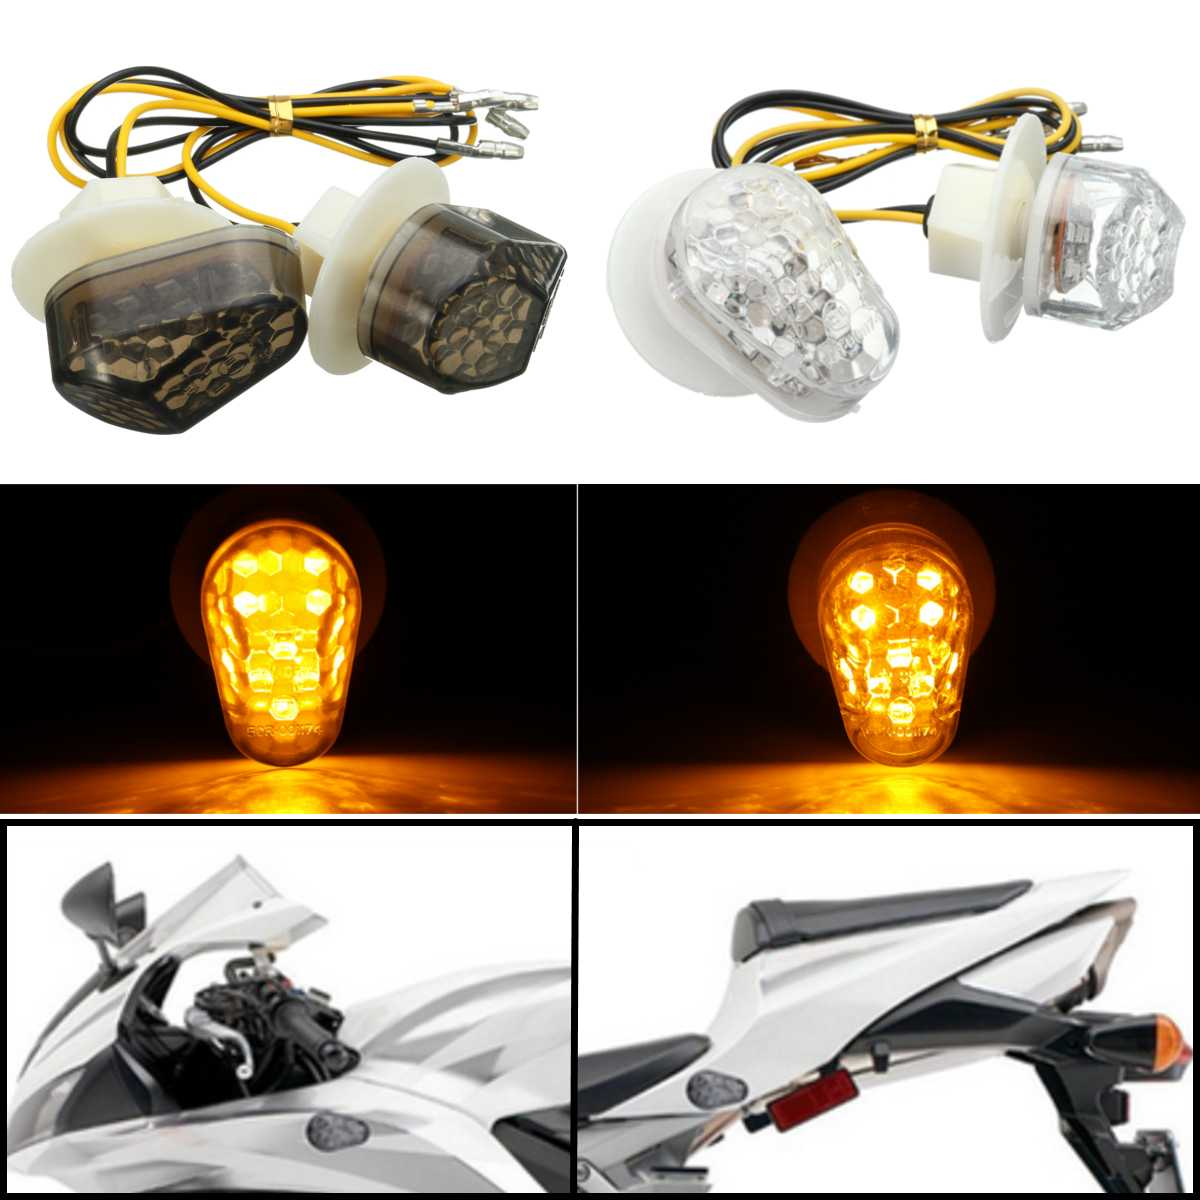 Motorcycle LED Flush Mount Turn Signal Light Indicator Blinker Lamp For Yamaha FZ6R FZ1 YZF R1 R6 R6S FZ09